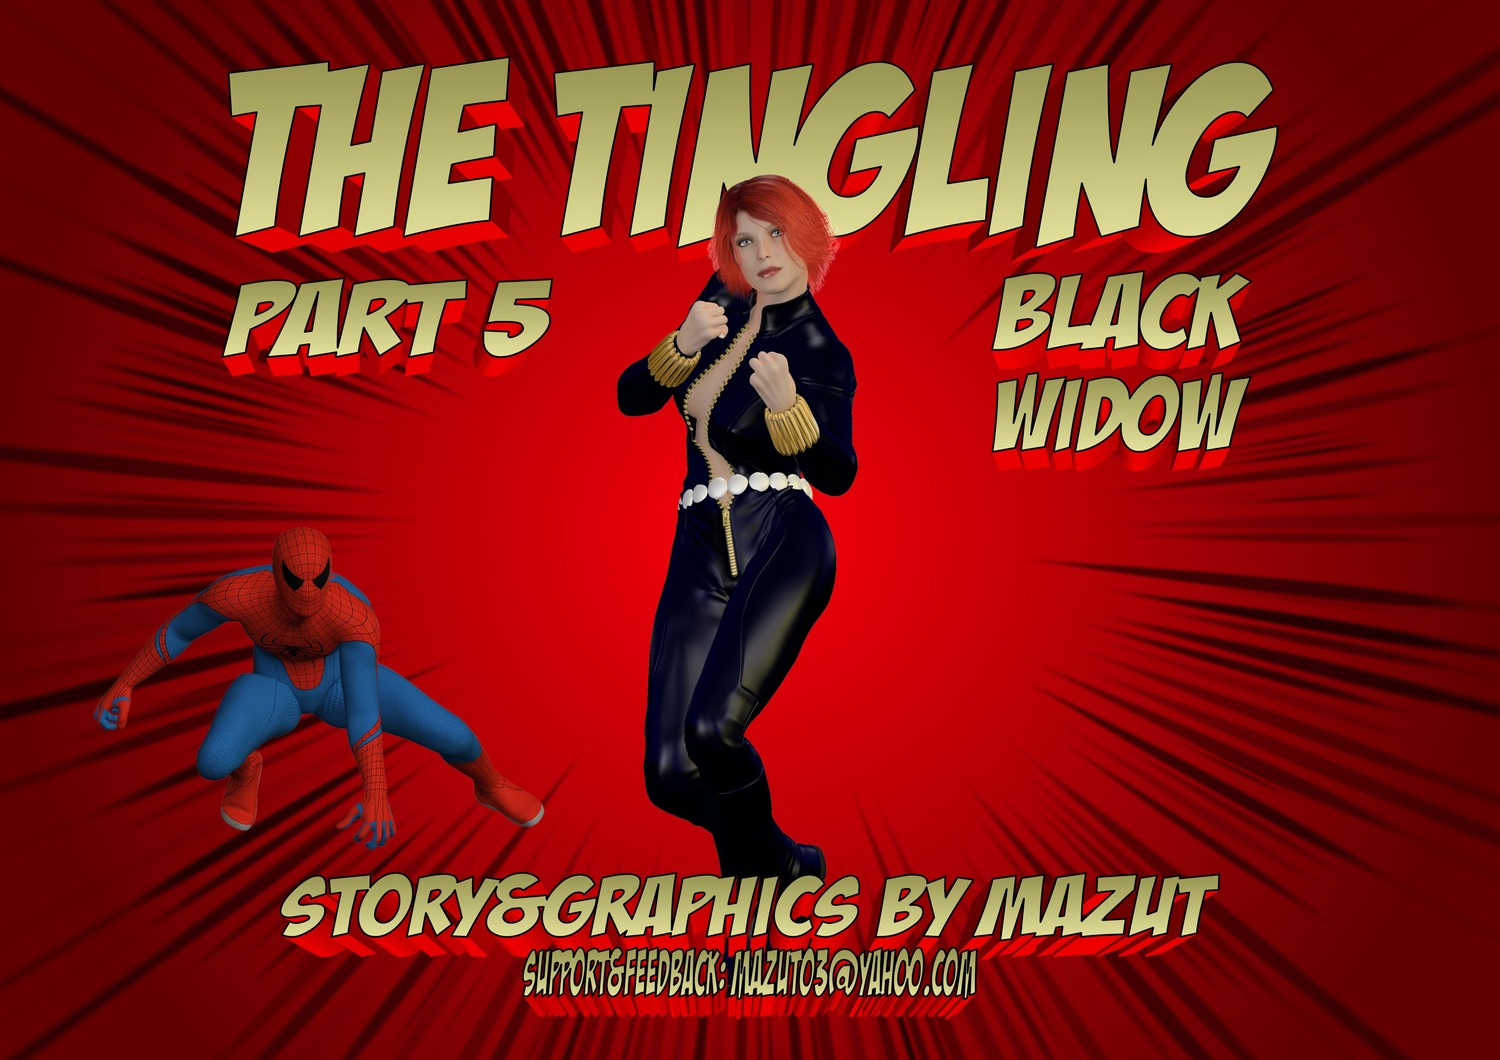 Mazut-The Tingling part 5